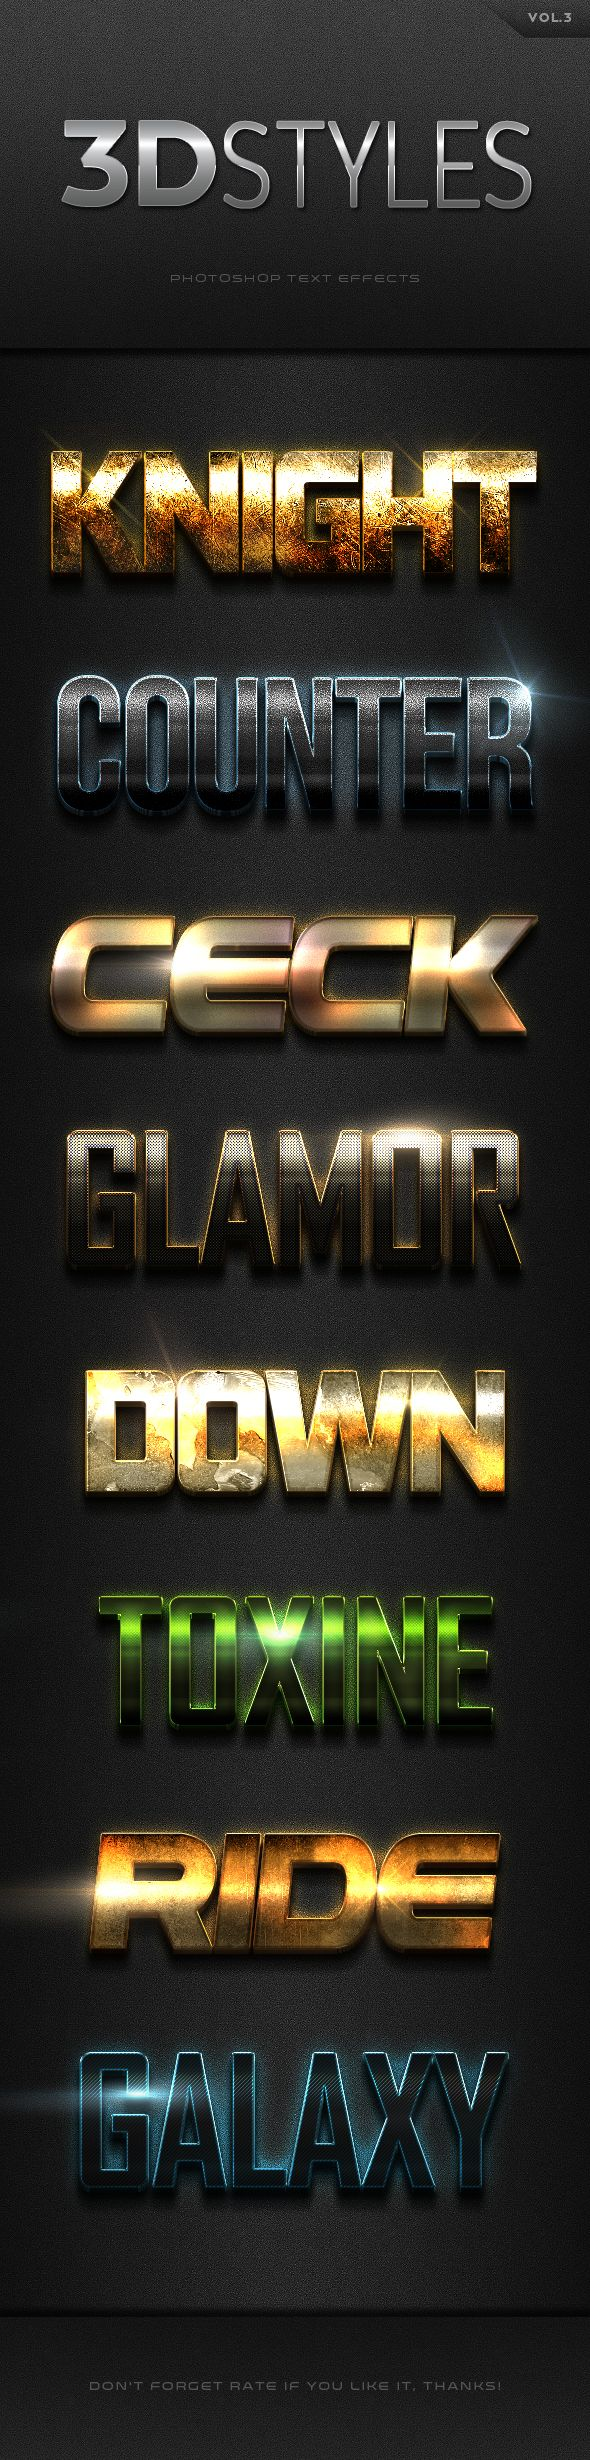 3D Photoshop Text Effects. Download here: http://graphicriver.net/item/3d-photoshop-text-effects-vol3/16562410?ref=ksioks